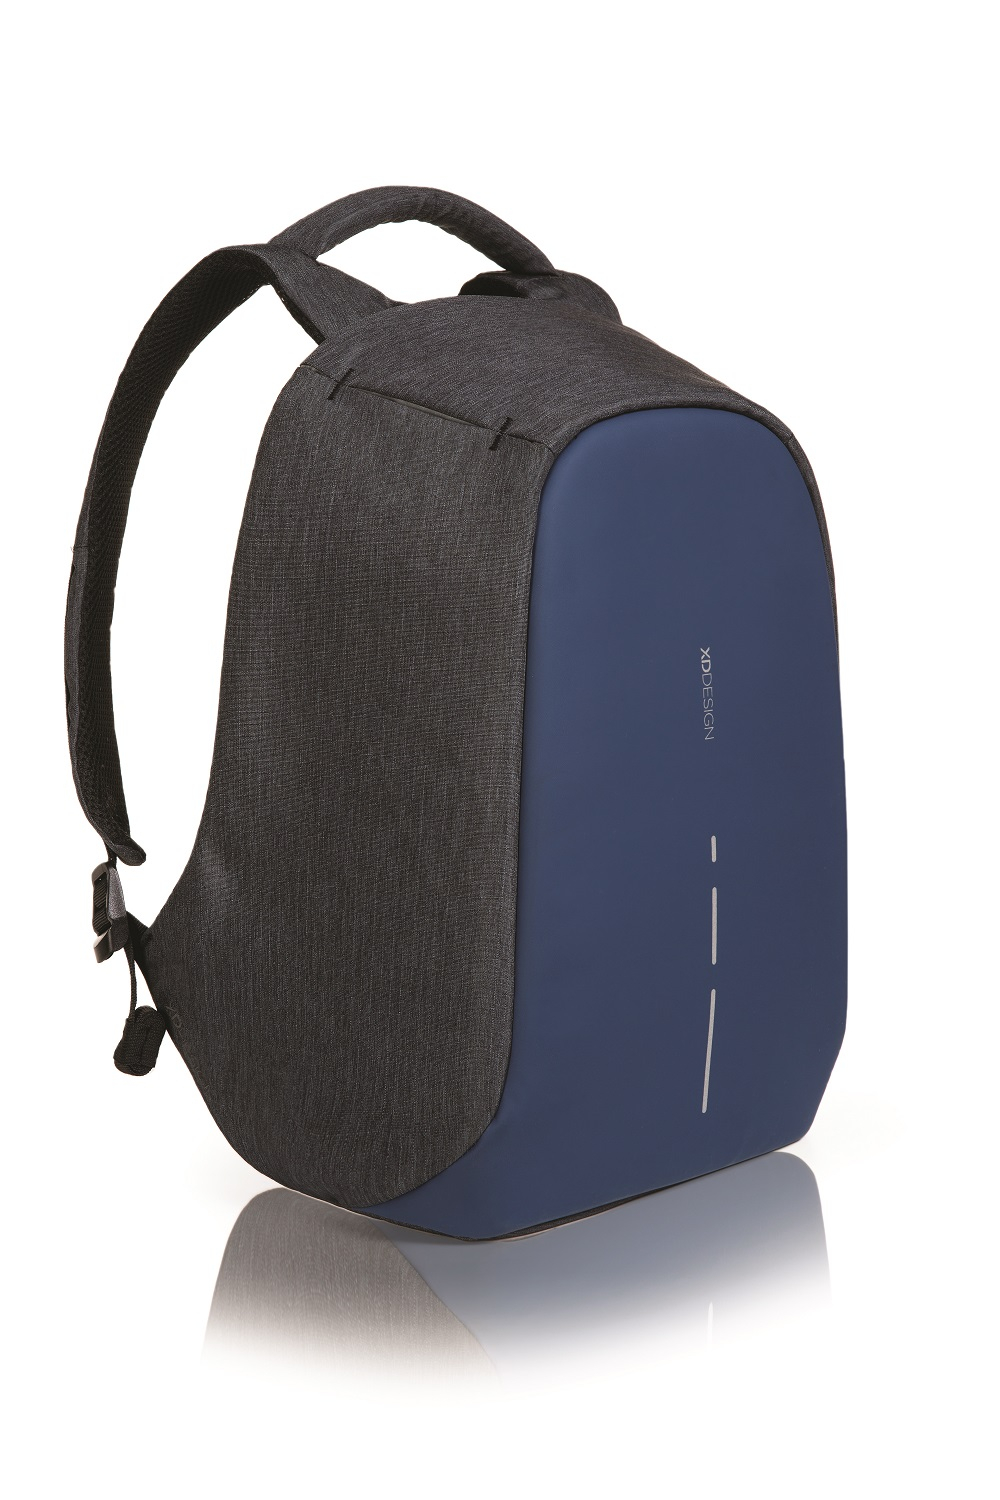 XD Design - Bobby Compact Anti-Theft-Backpack - Diver Blue (p705.535)